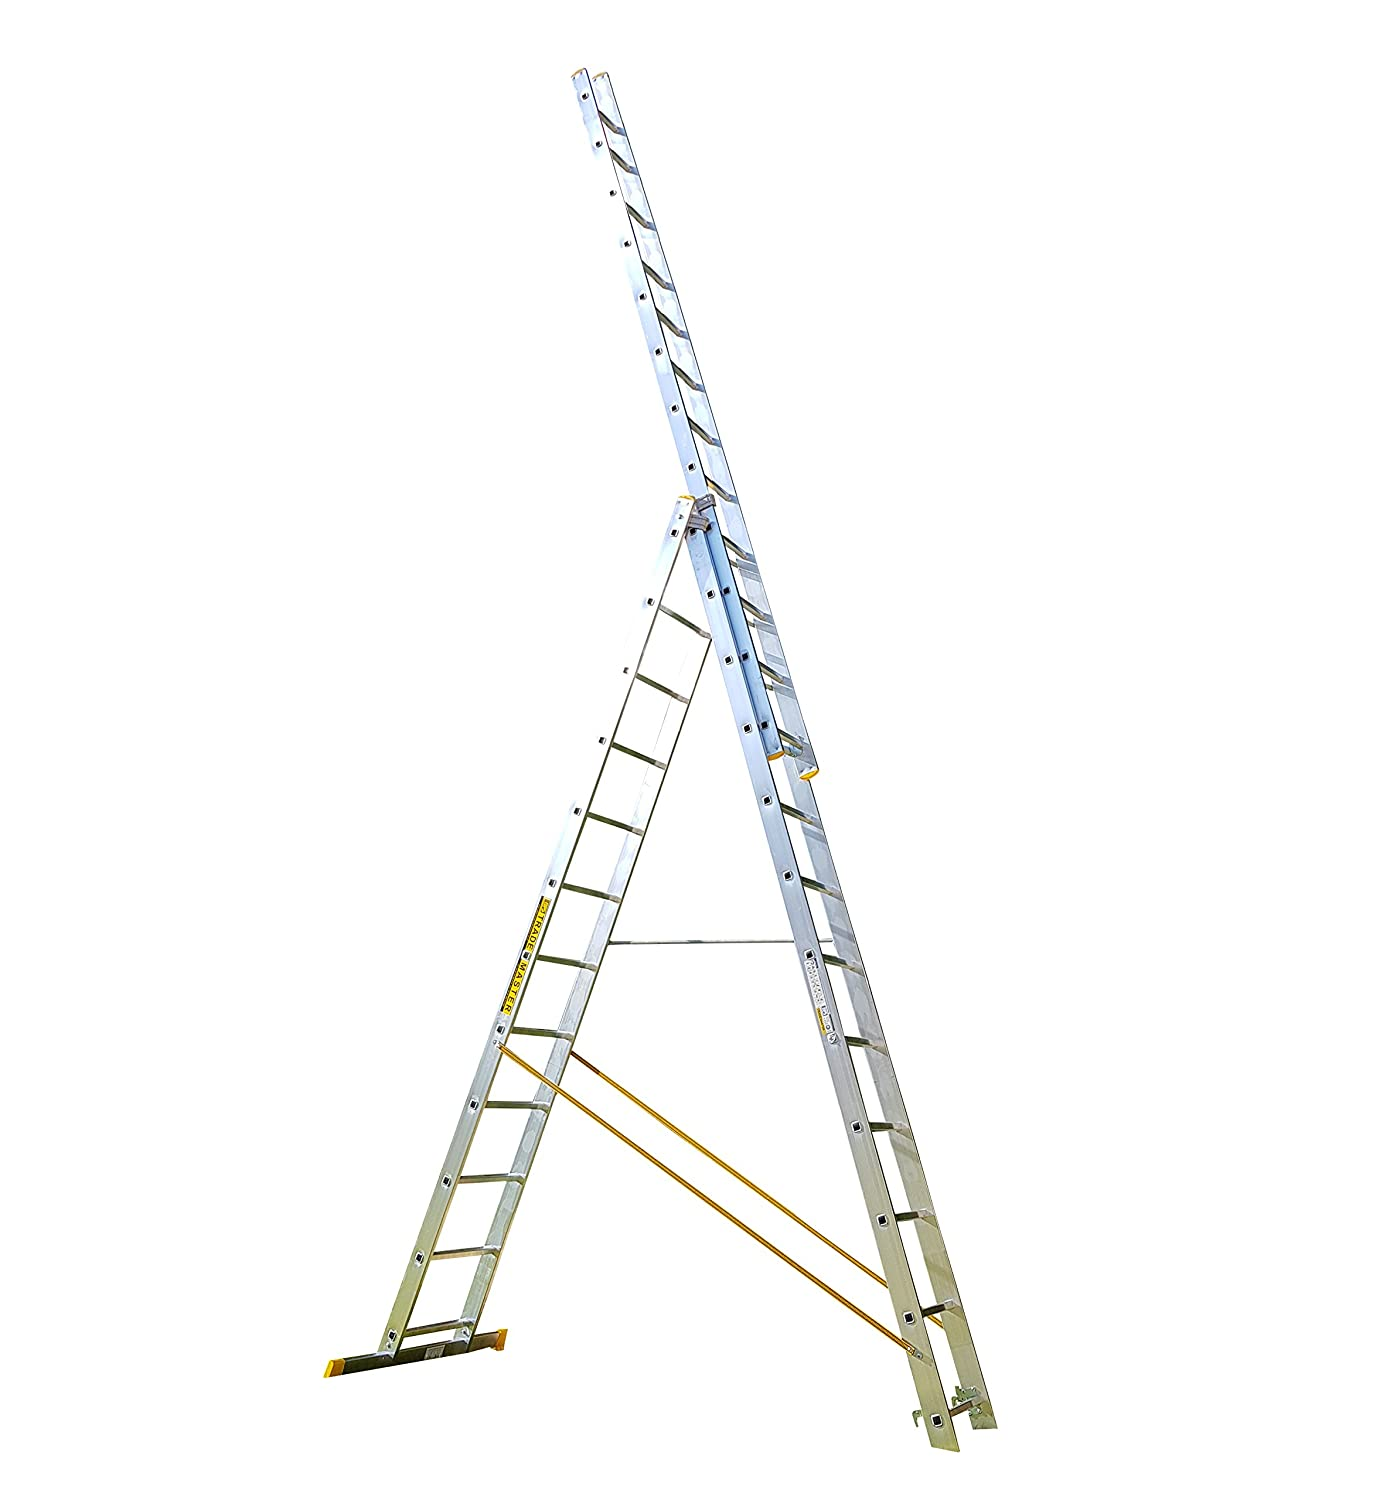 8 Rung Trade Master Combi All-in-One Extension Ladder, Step Ladder & Free Standing Ladders Plus Step Platform BPS Access Solutions